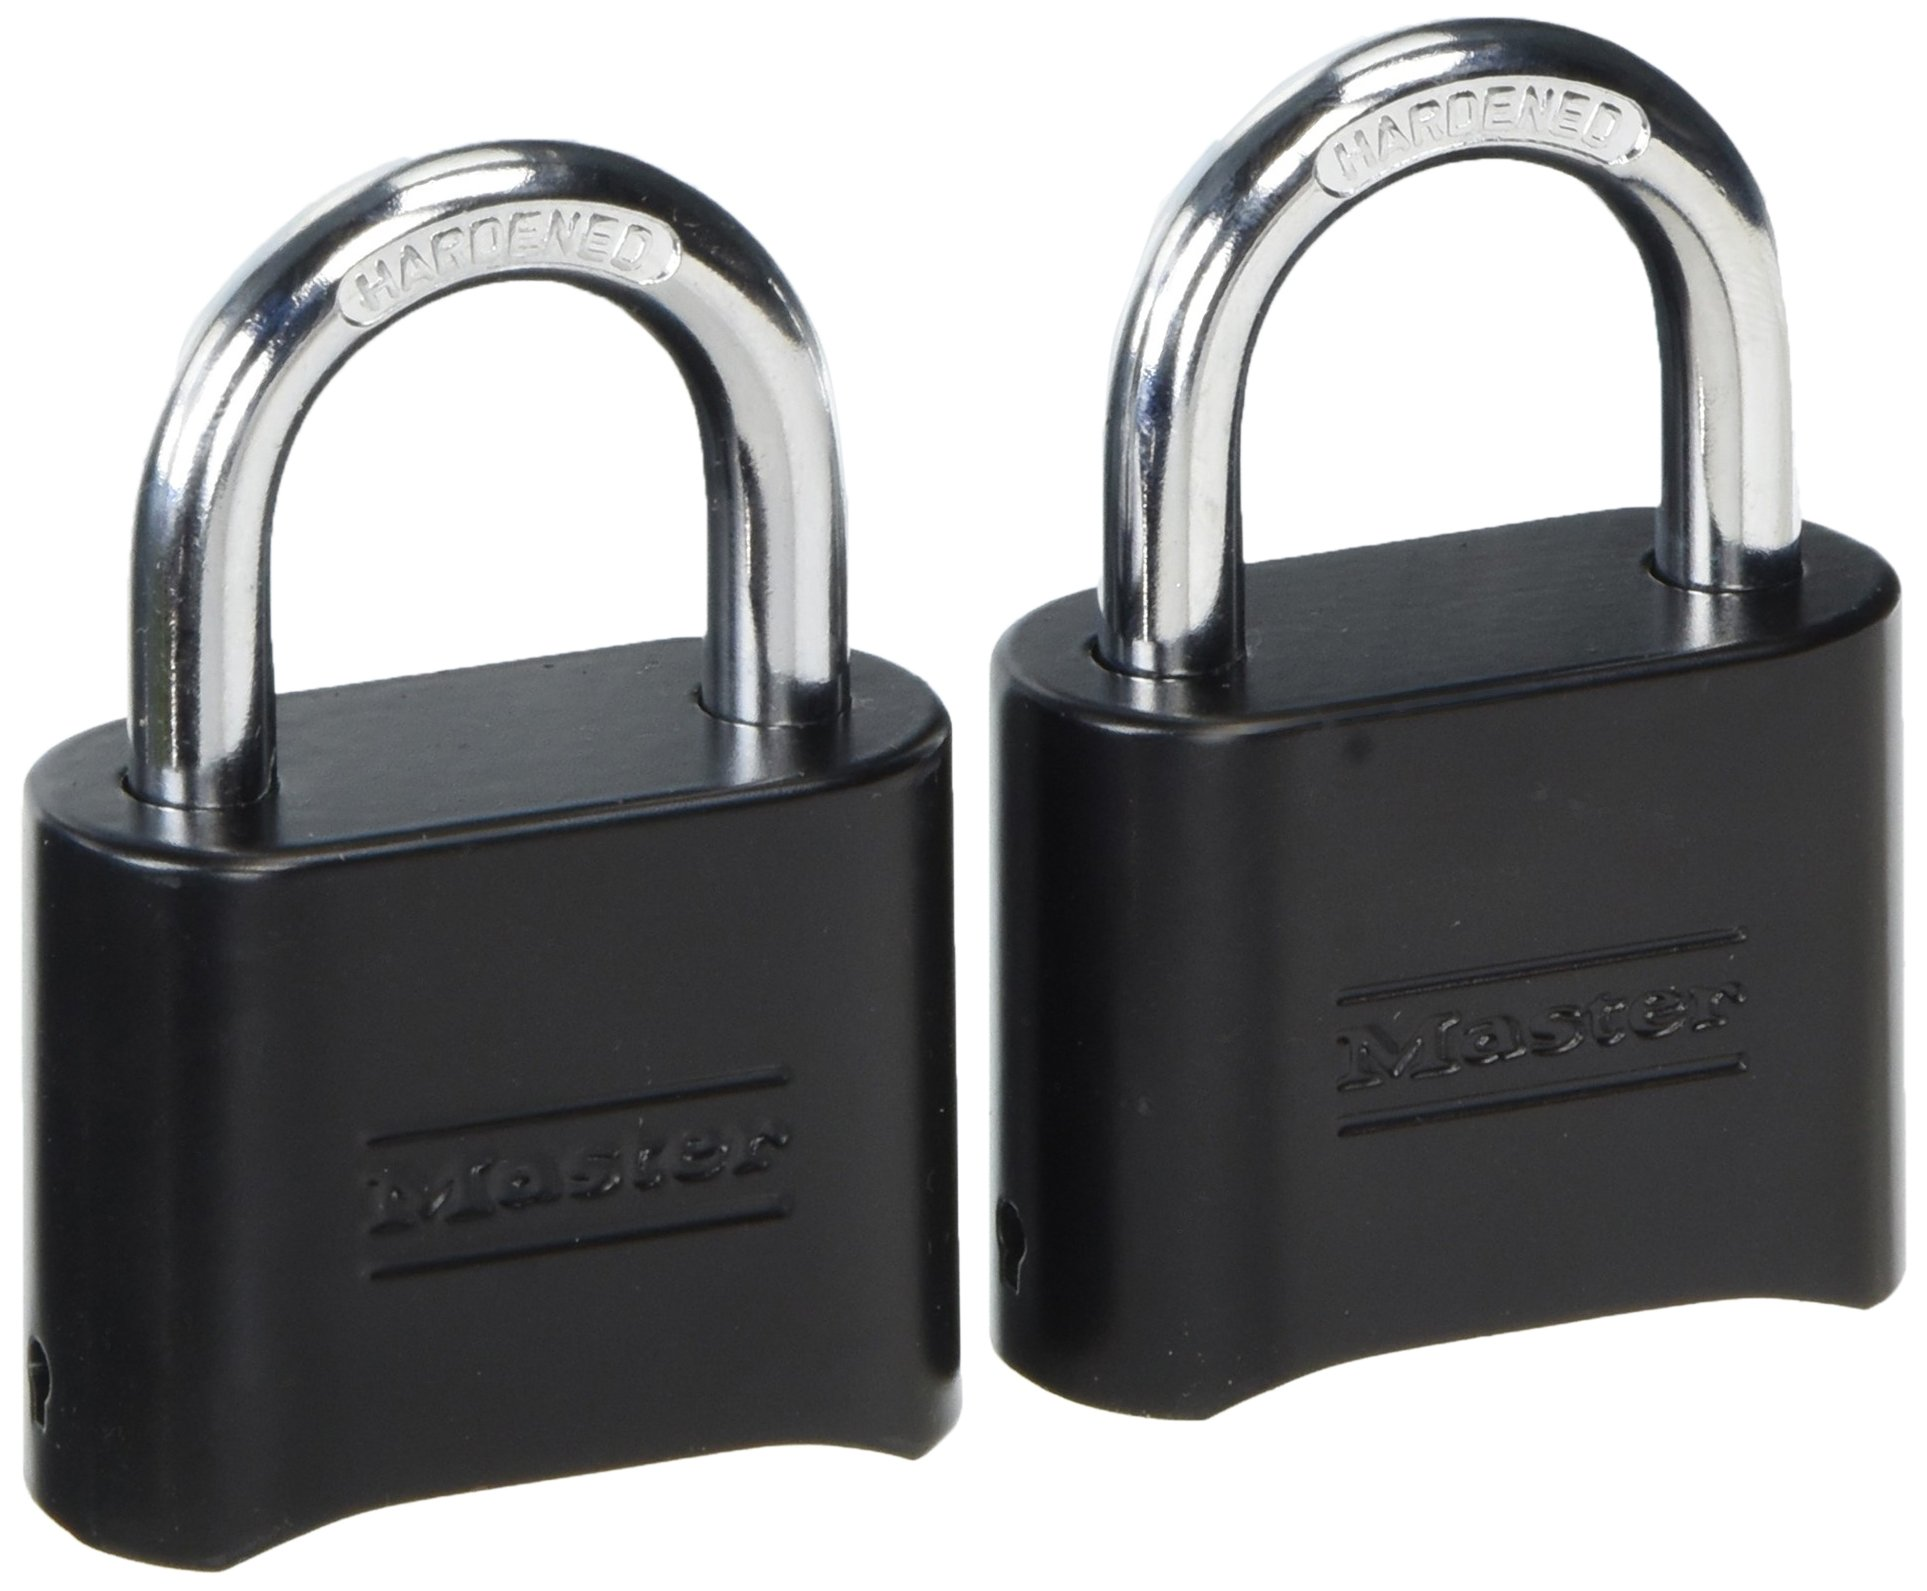 Master Lock 178D Set-Your-Own Combination Padlock, Die-Cast, Black (Pack of 2)